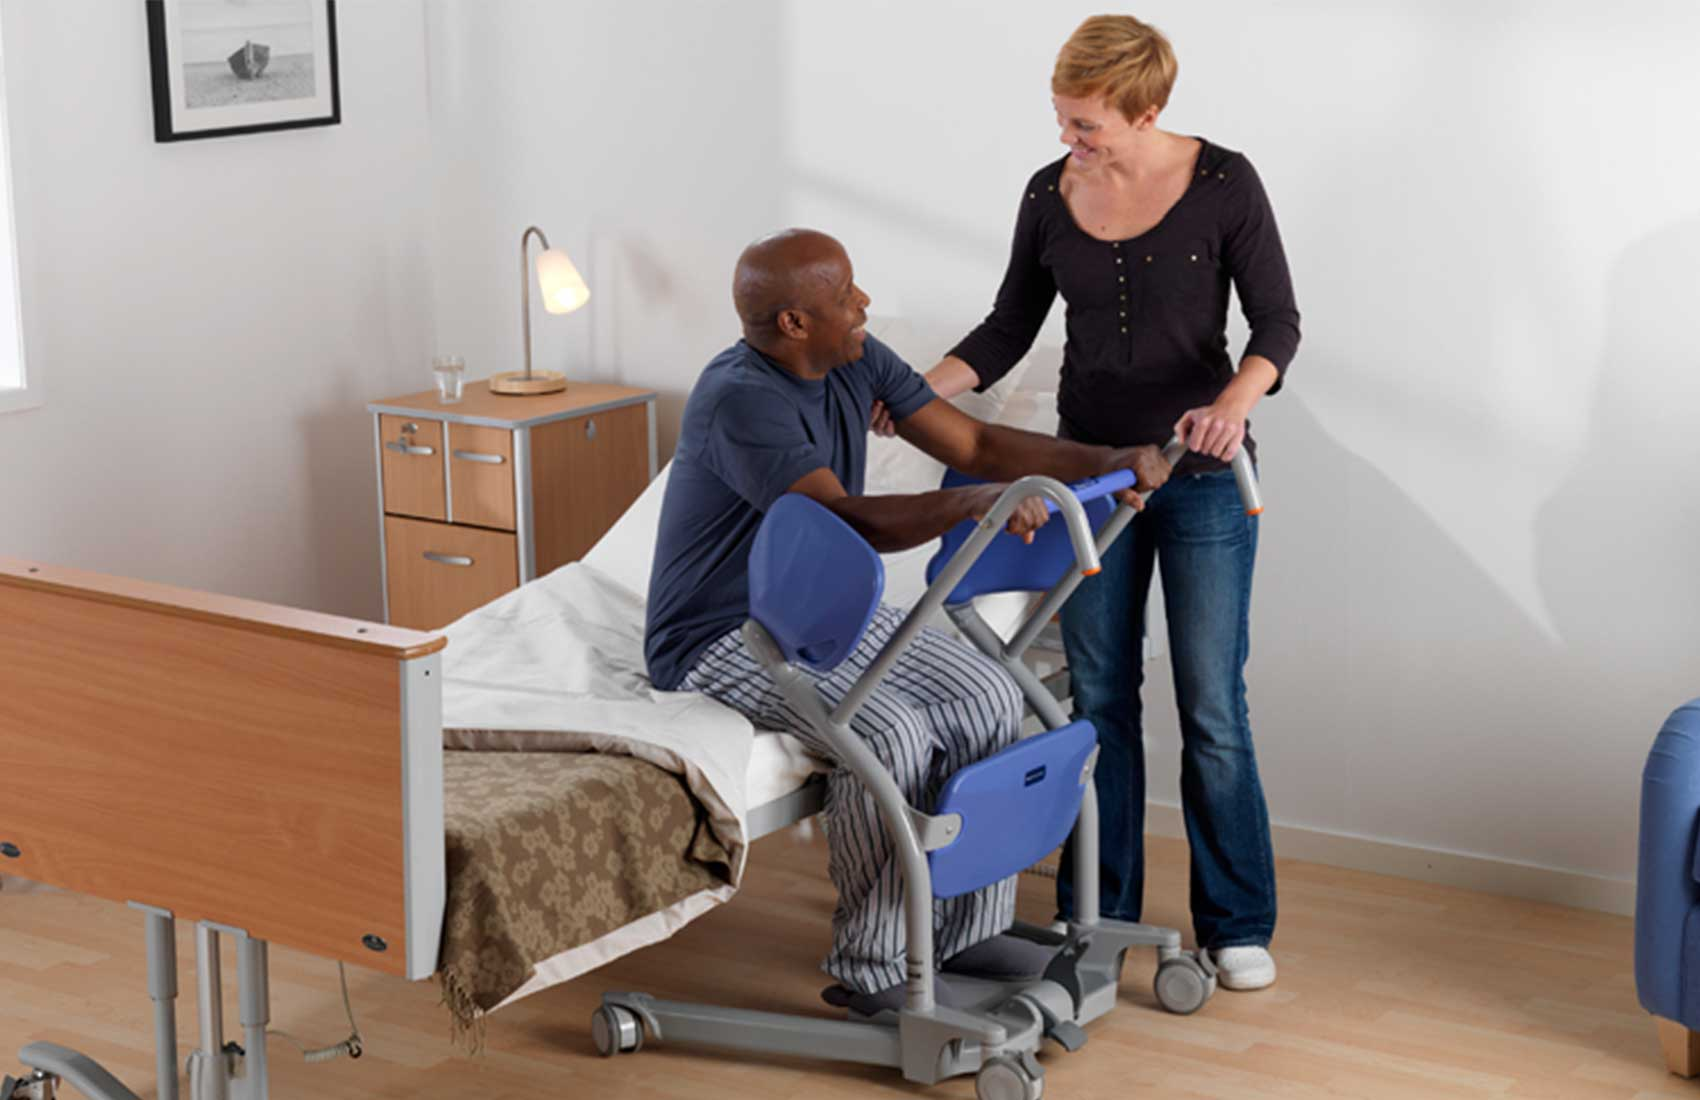 ArjoHuntleigh Products Patient Transfer Solutions Standing and Raising Aids Sara Stedy Tranfer From Bed Male Patient and Carer